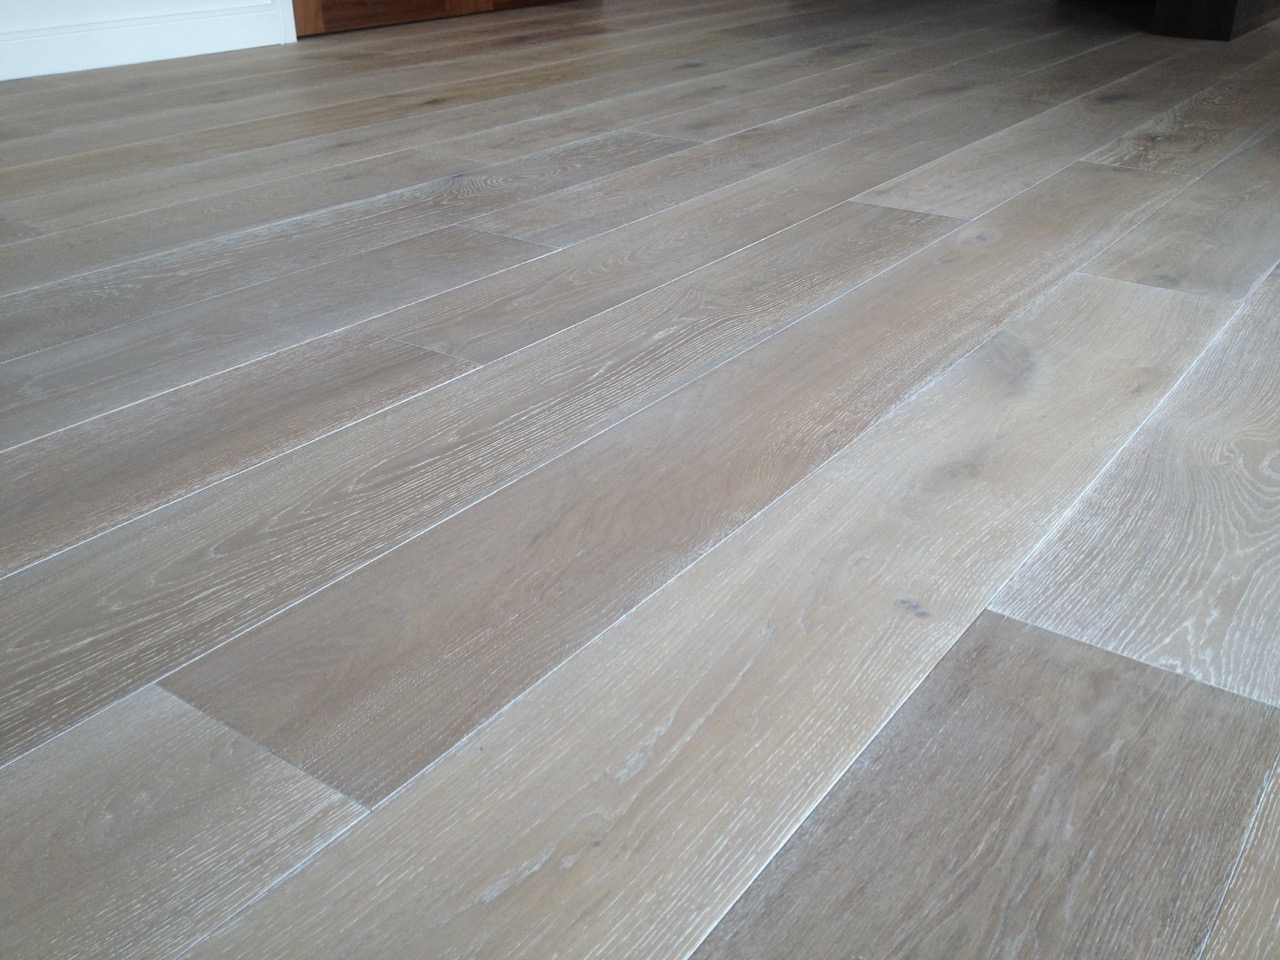 Oak flooring uk karndean van gogh auckland oak vgw52t for Solid oak wood flooring